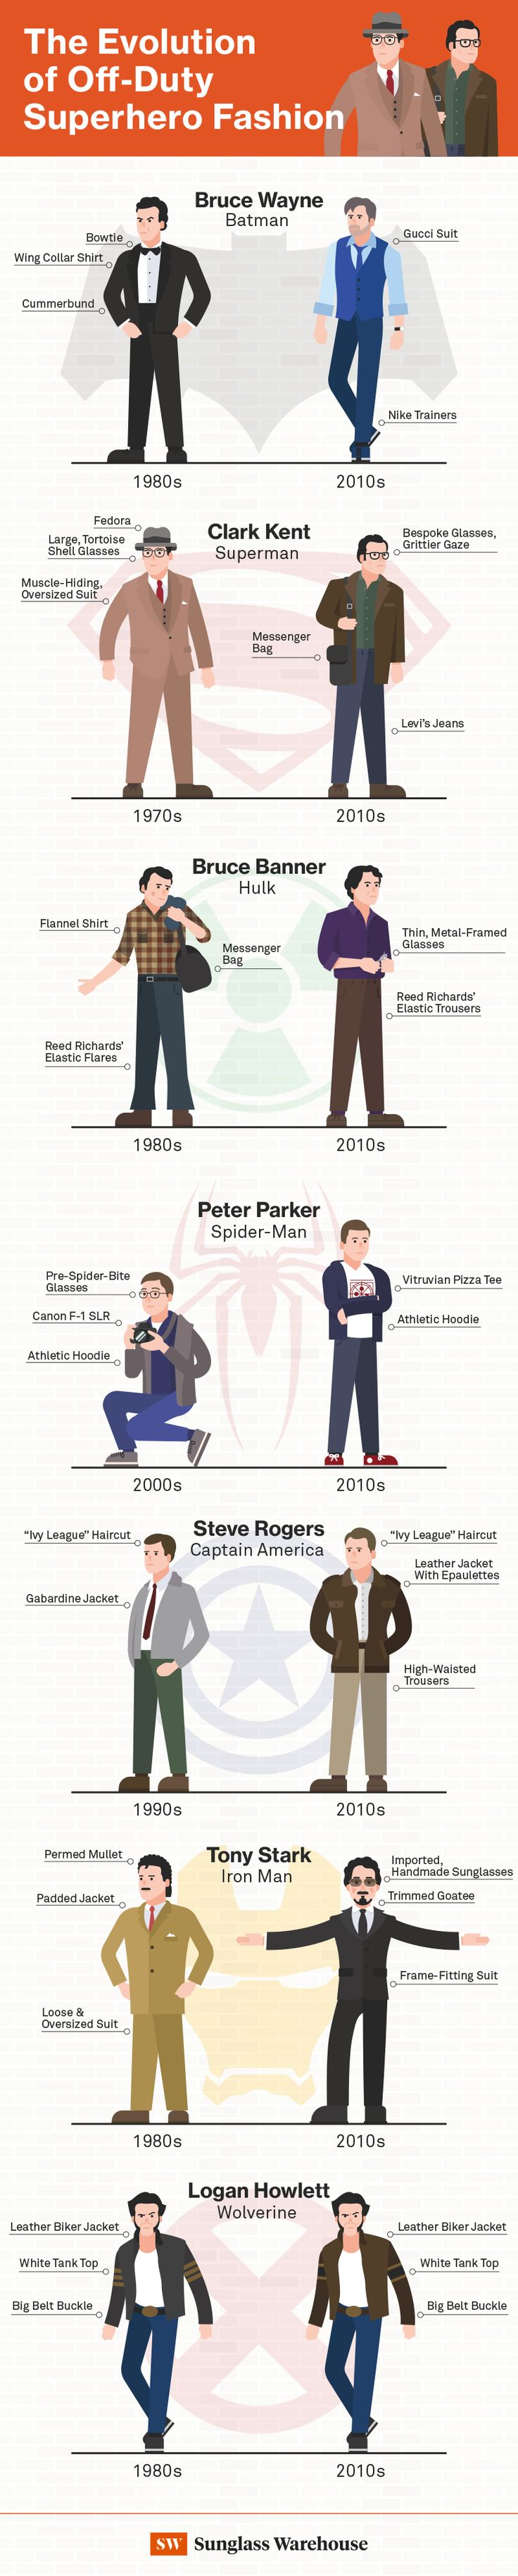 "How the ""off duty"" clothes of superheroes have evolved over the years."